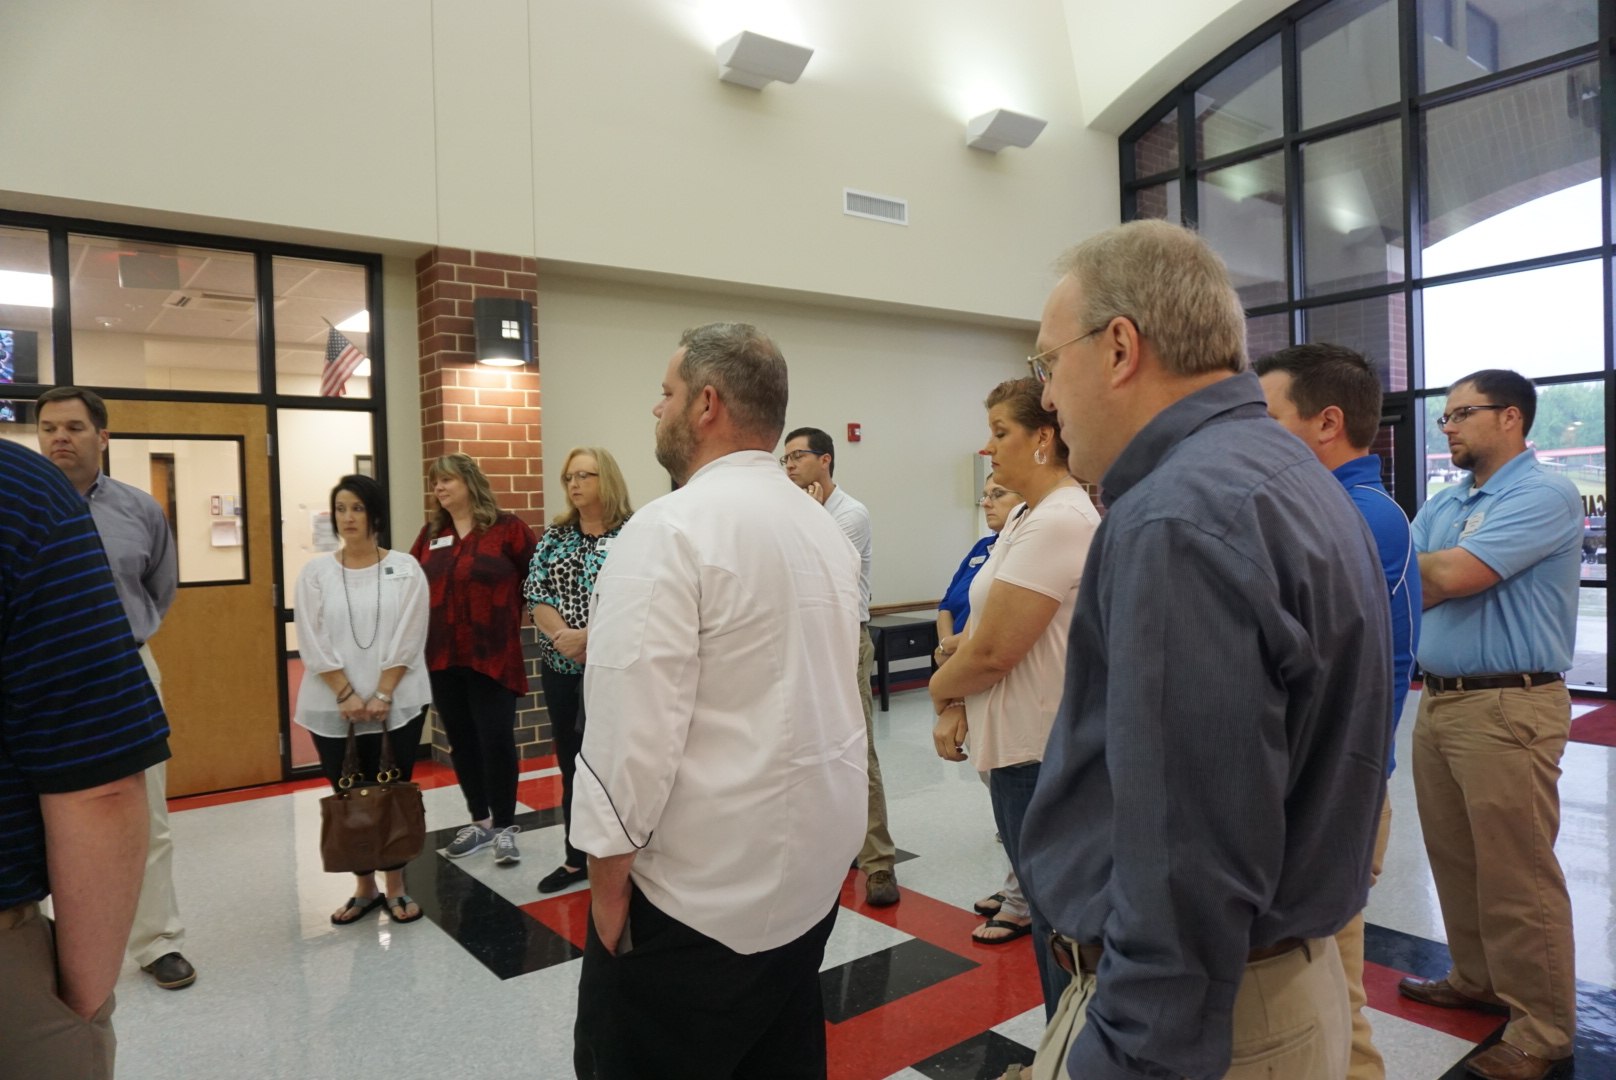 SSD Personnel visit Cabot school